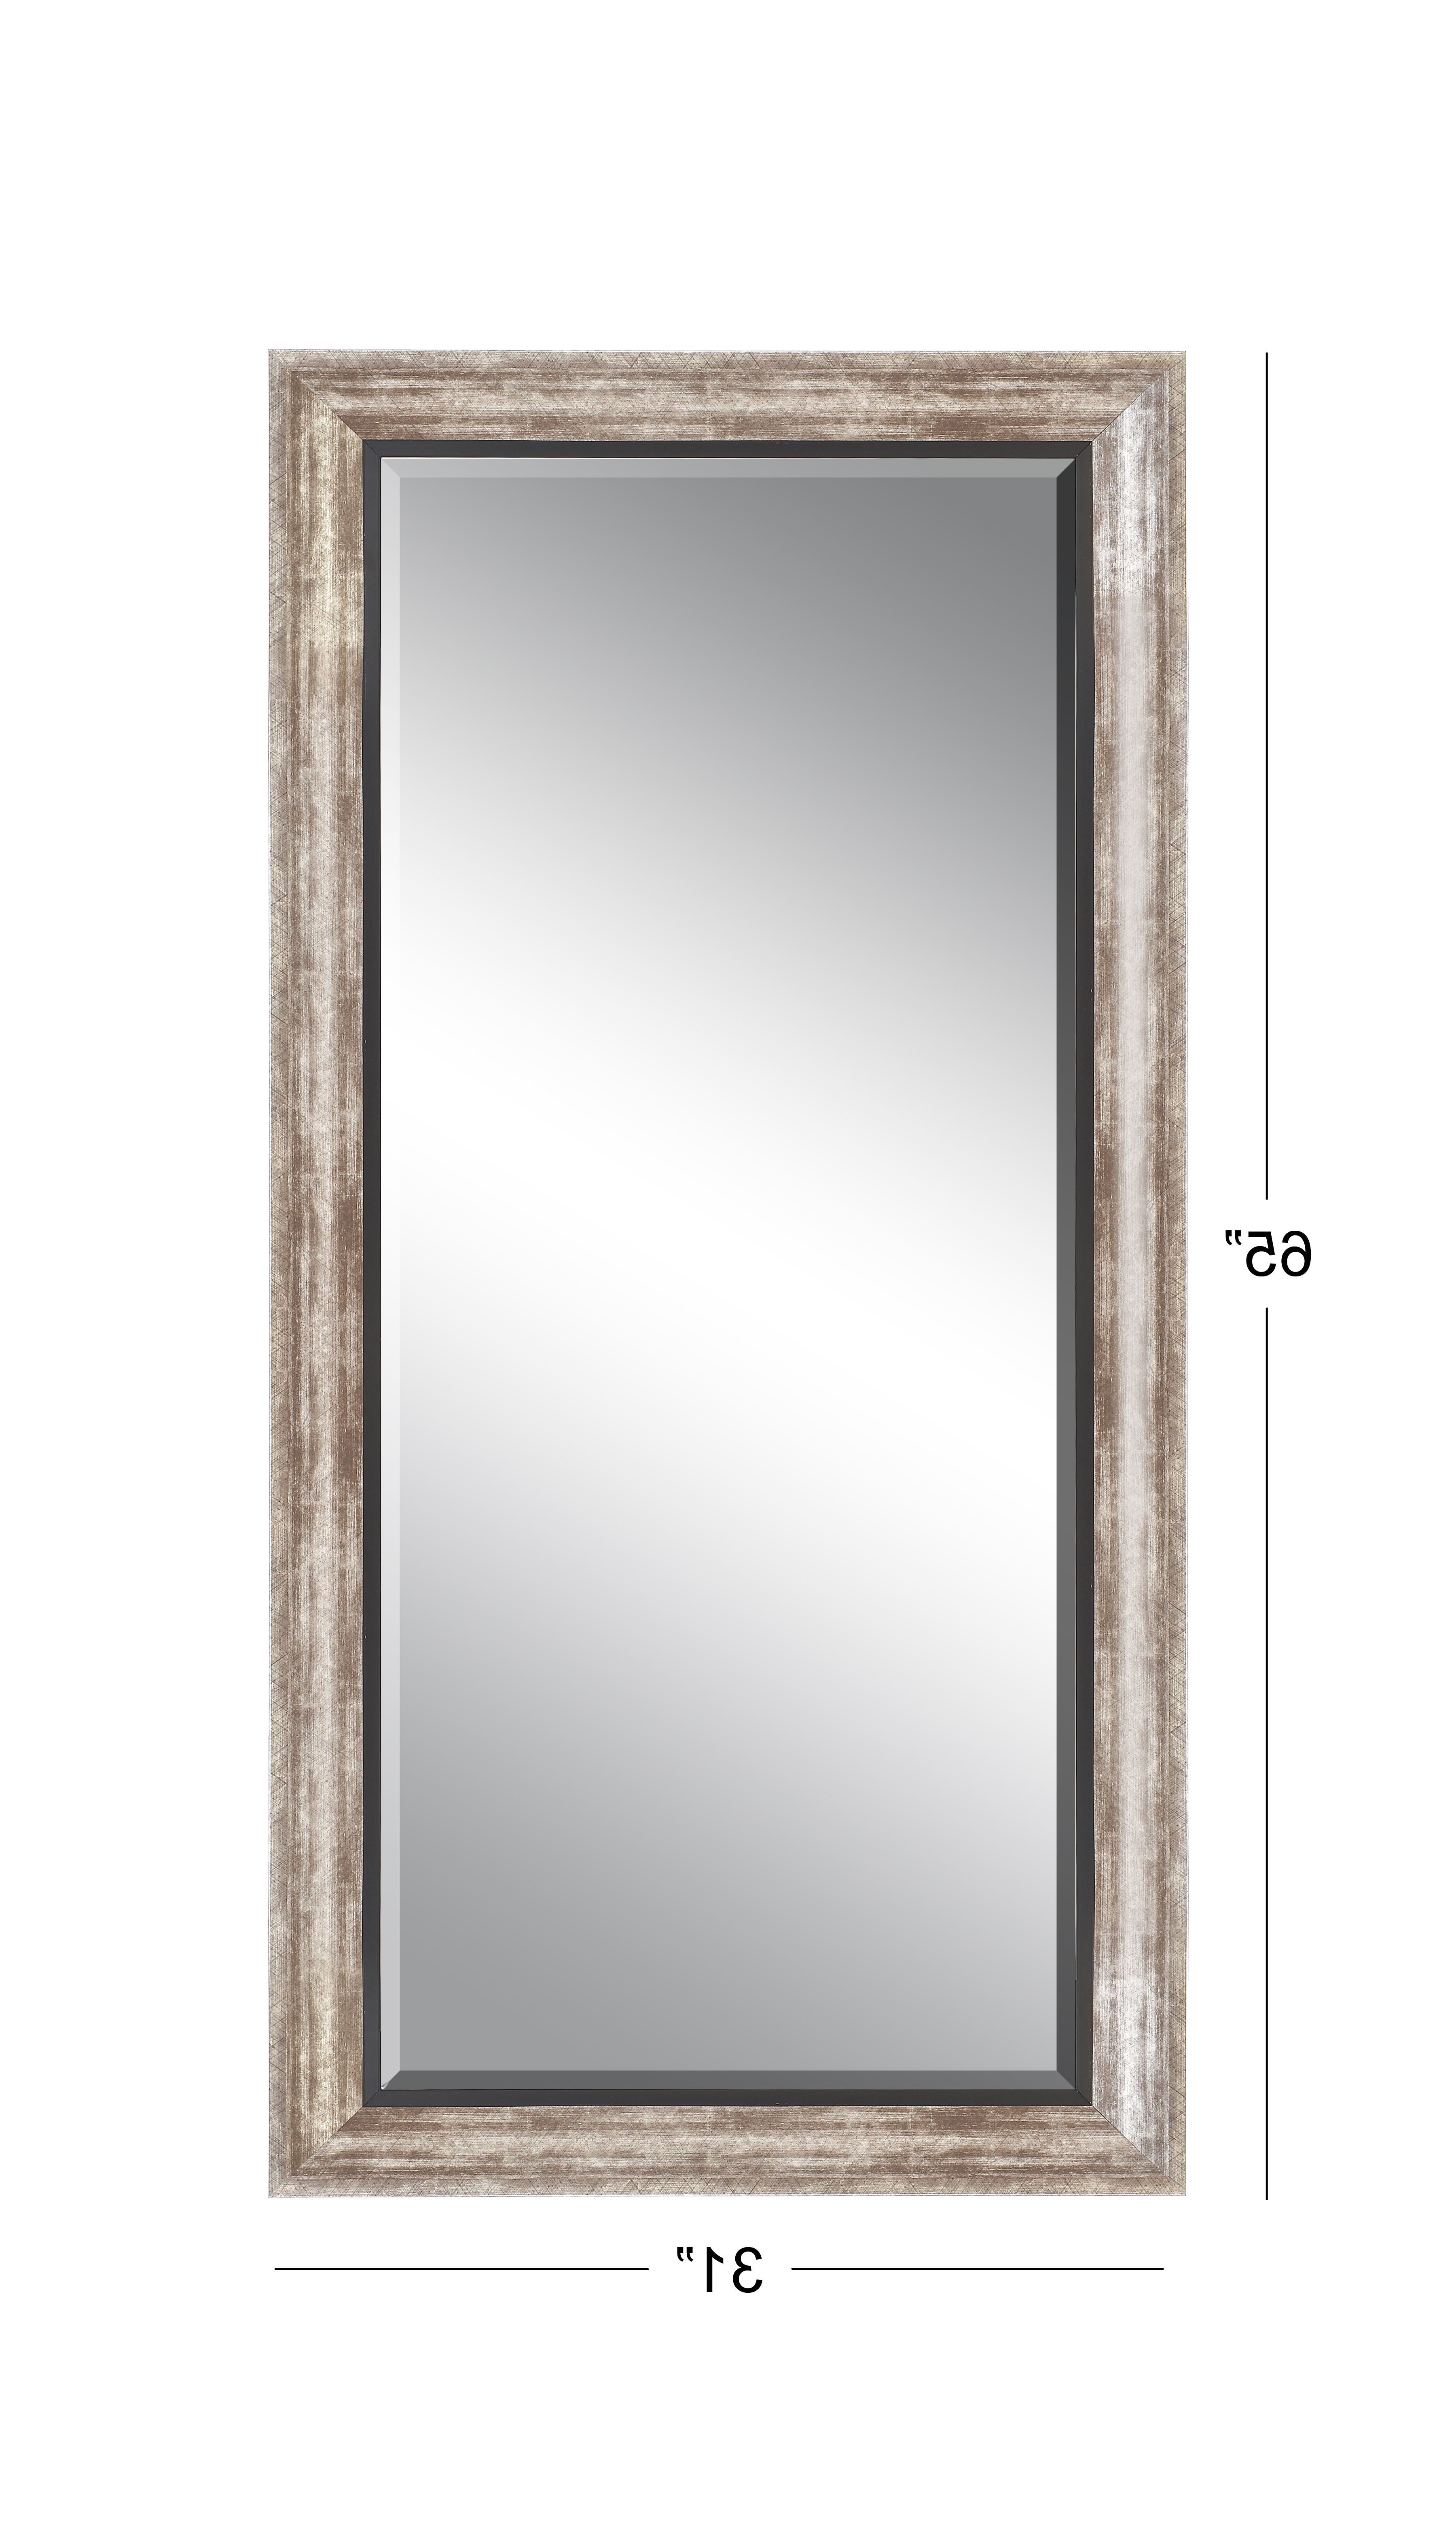 Tall Wall Mirrors For Most Recently Released Decmode 65 X 31 Inch Rustic Foam Rectangular Framed Wall Mirror, Bronze (View 11 of 20)